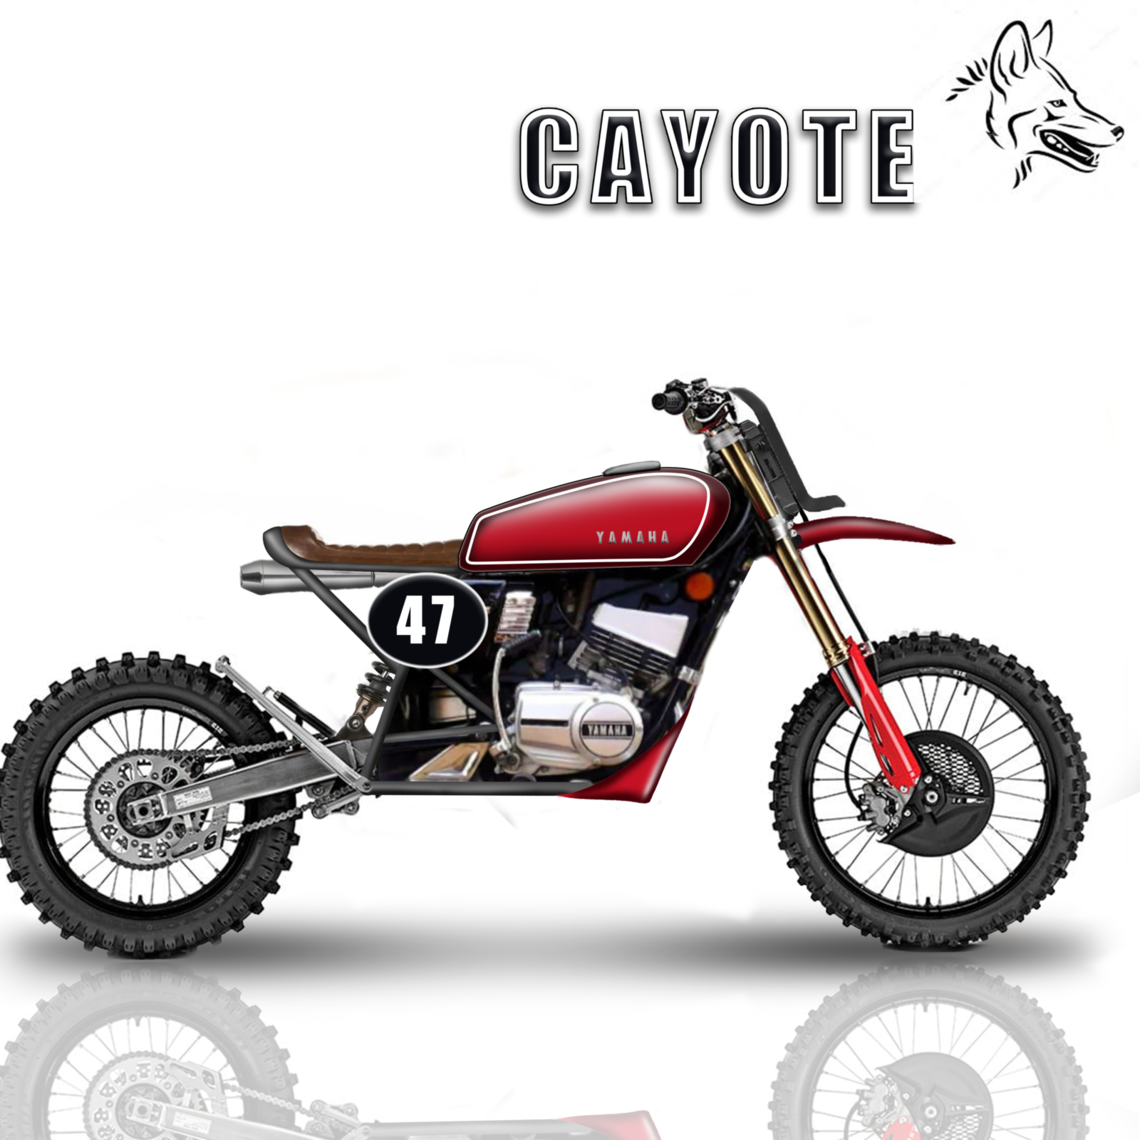 Cayote RED